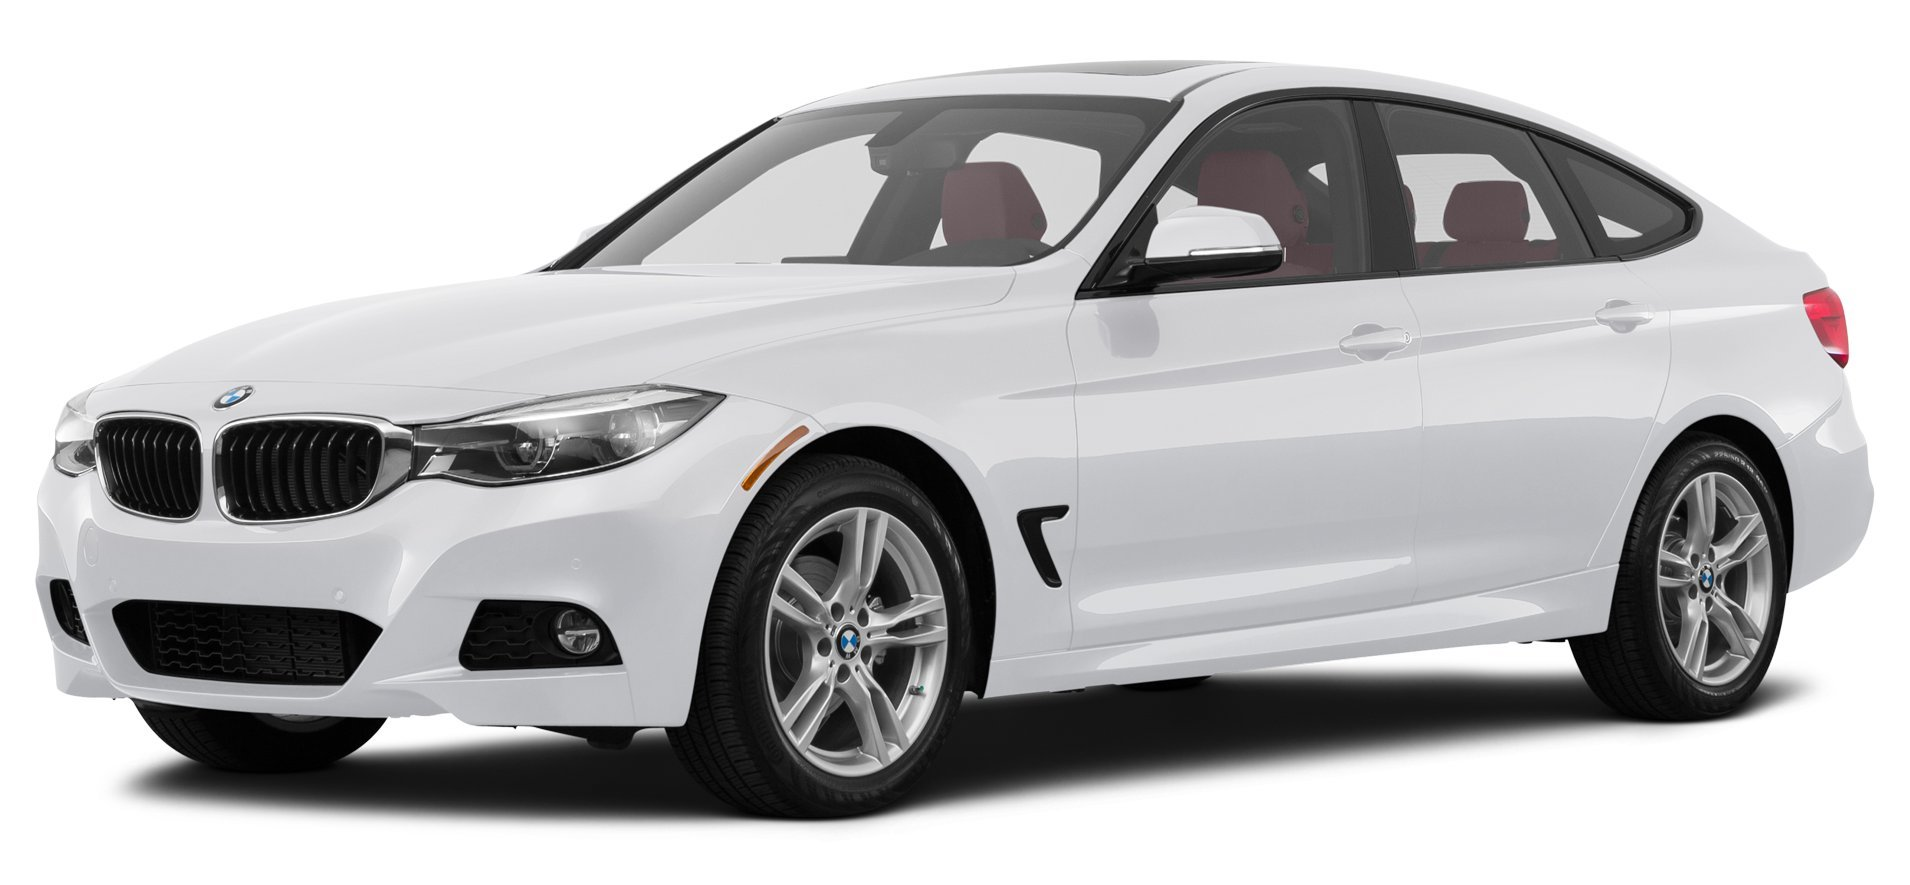 Amazon.com: 2017 BMW 330i GT xDrive Reviews, Images, and